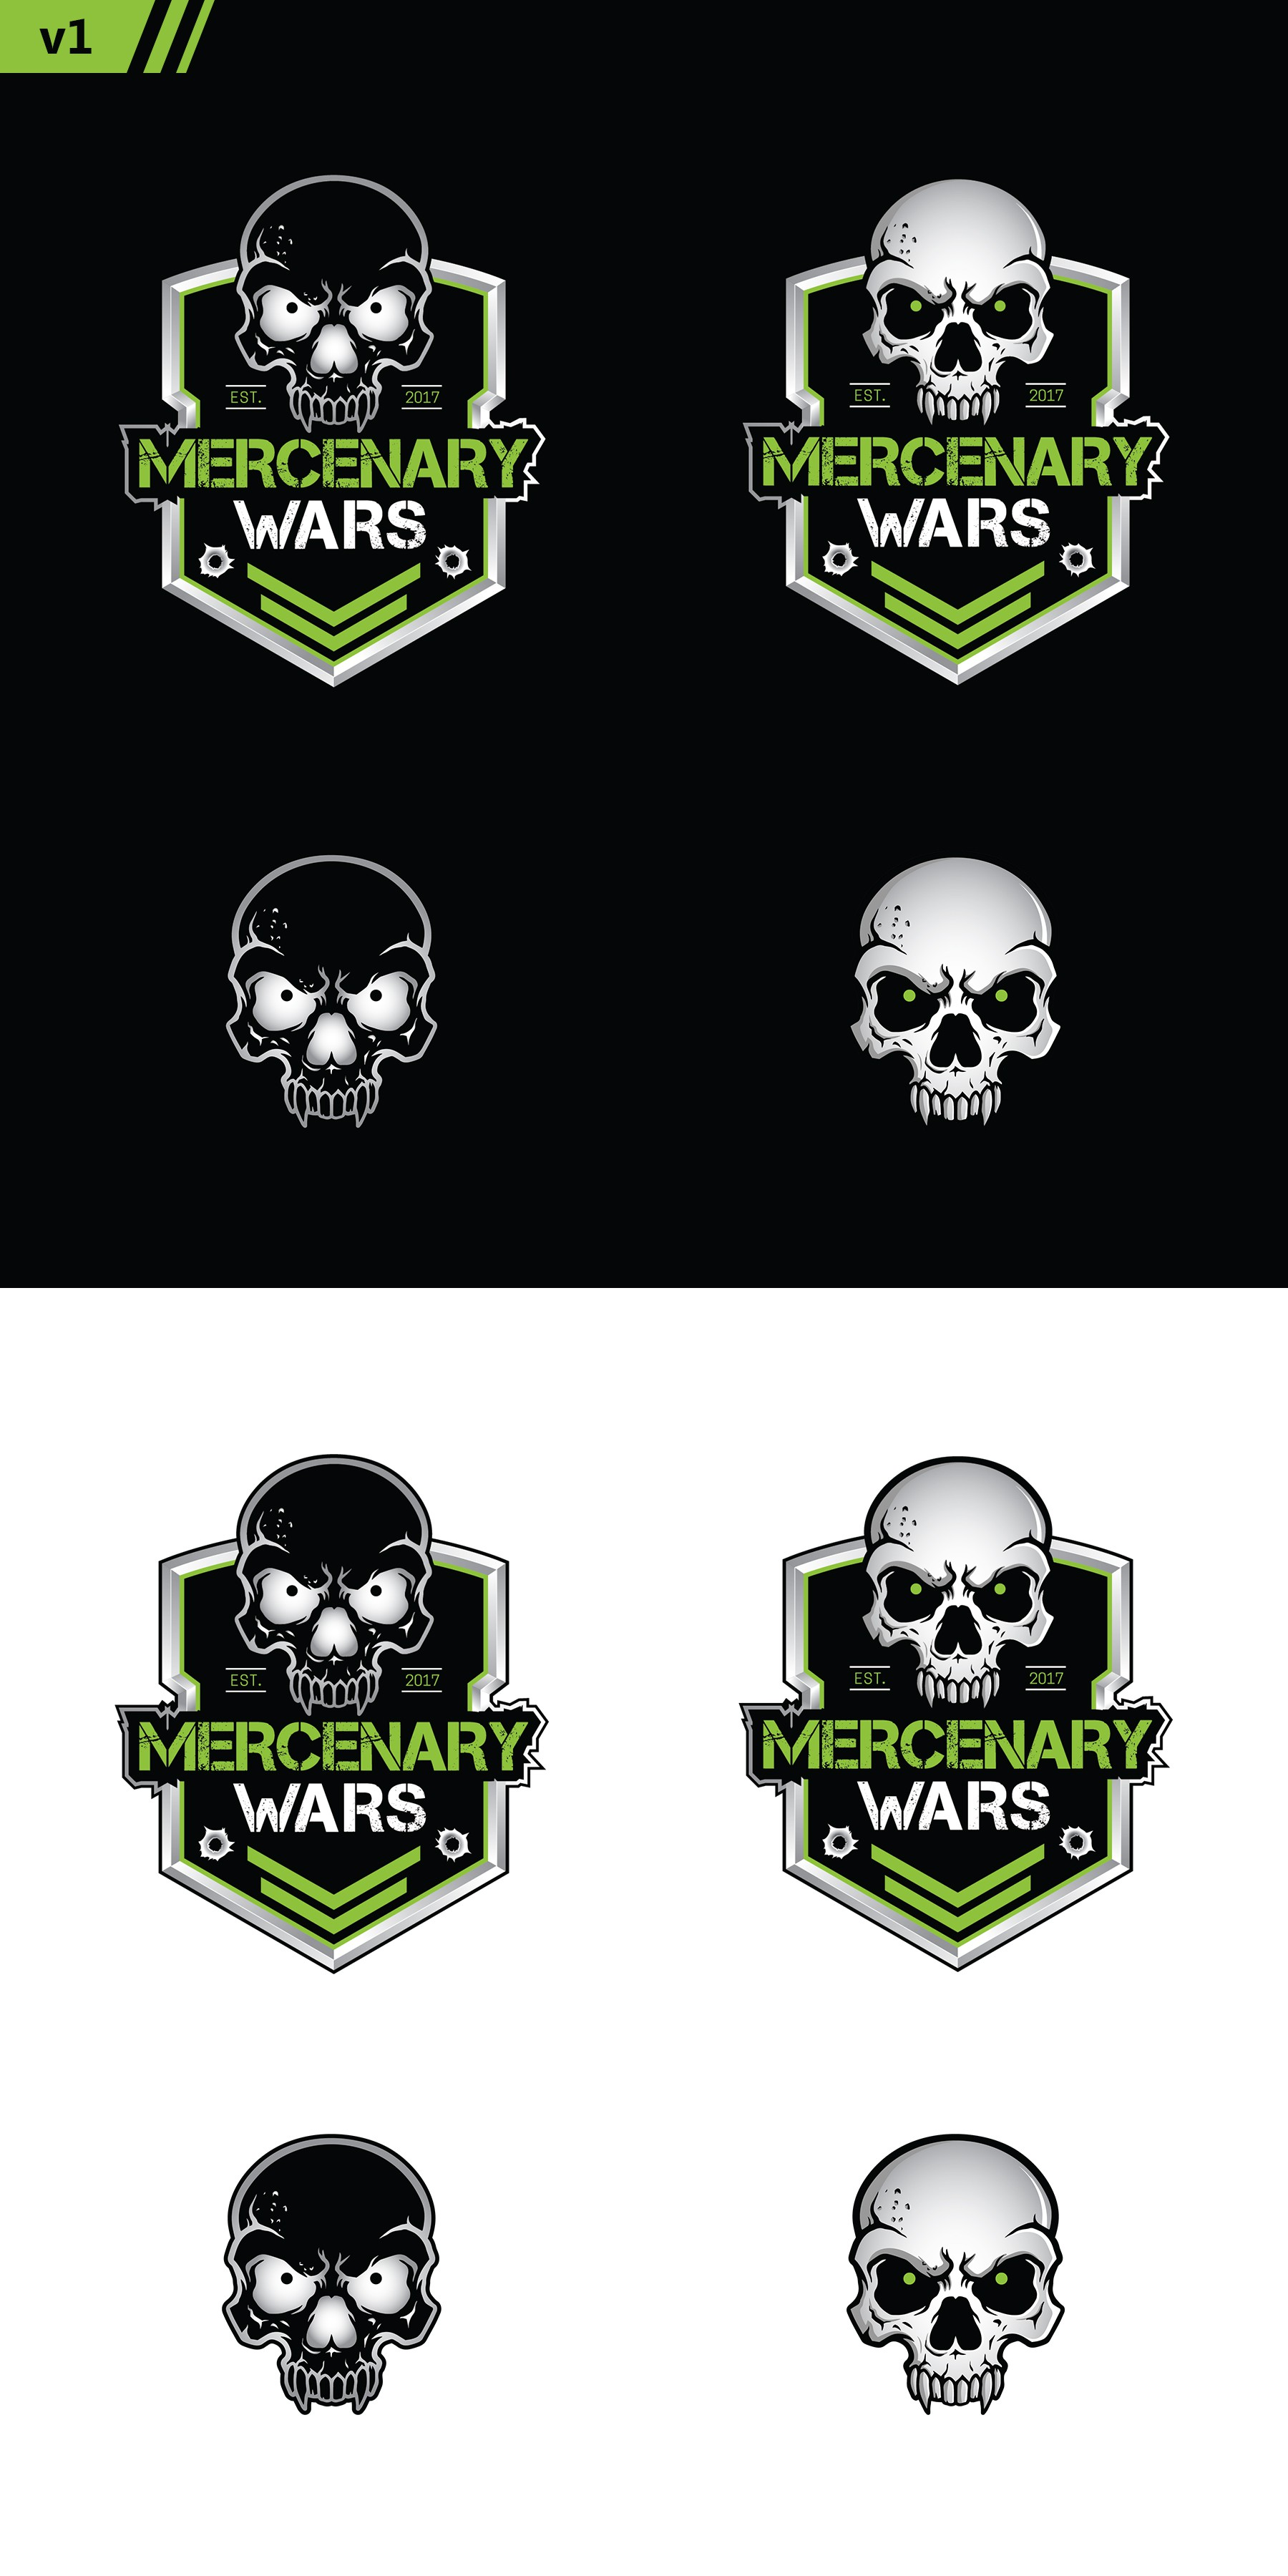 Mercenary Wars - design logo for badass new obstacle course company!